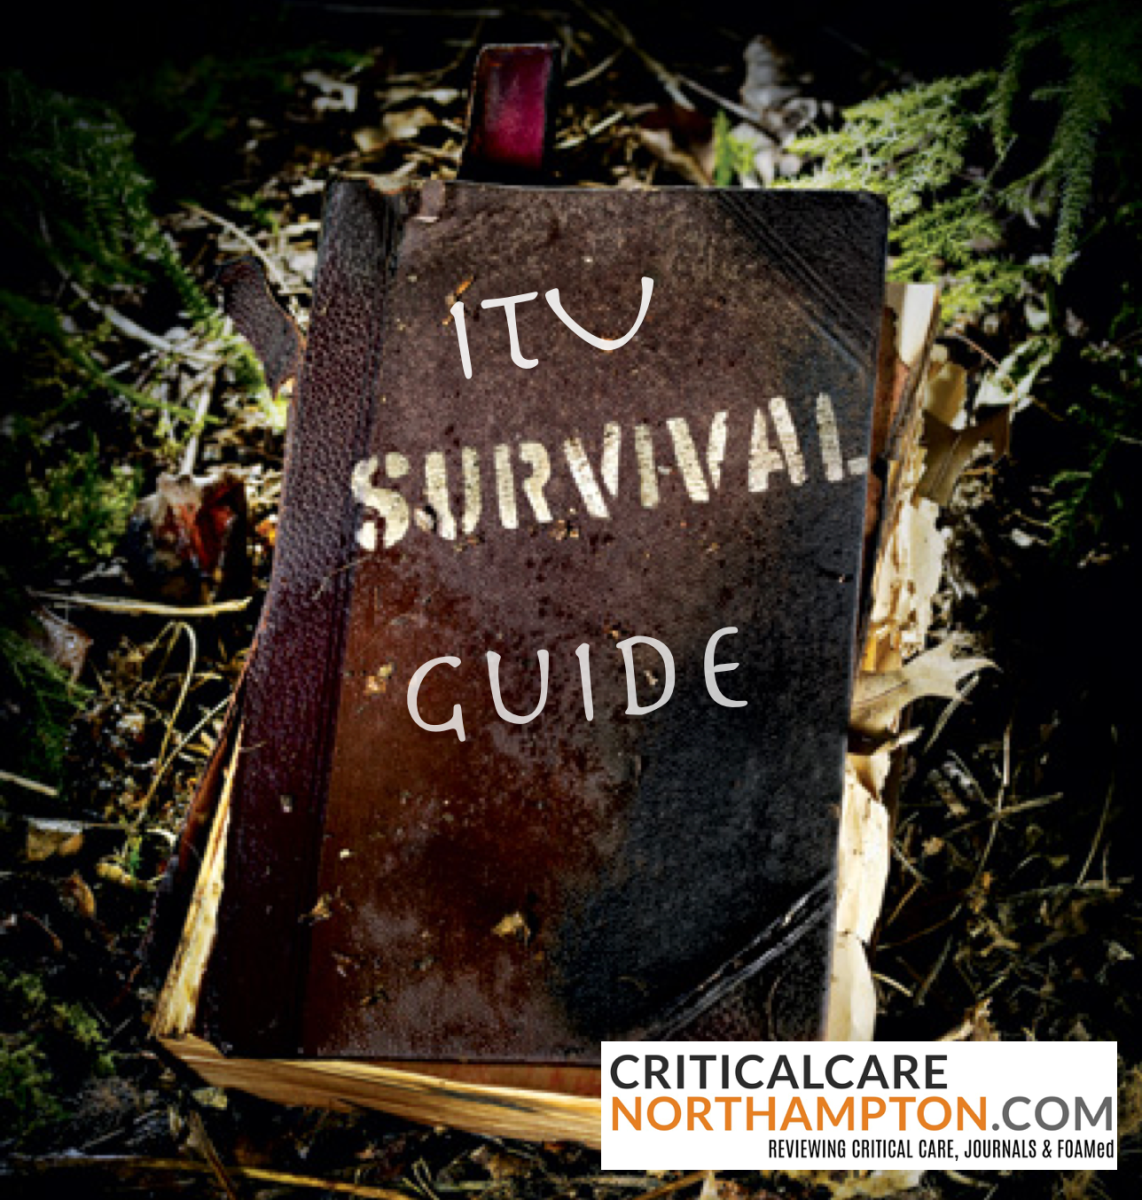 General ITU Survival Guide